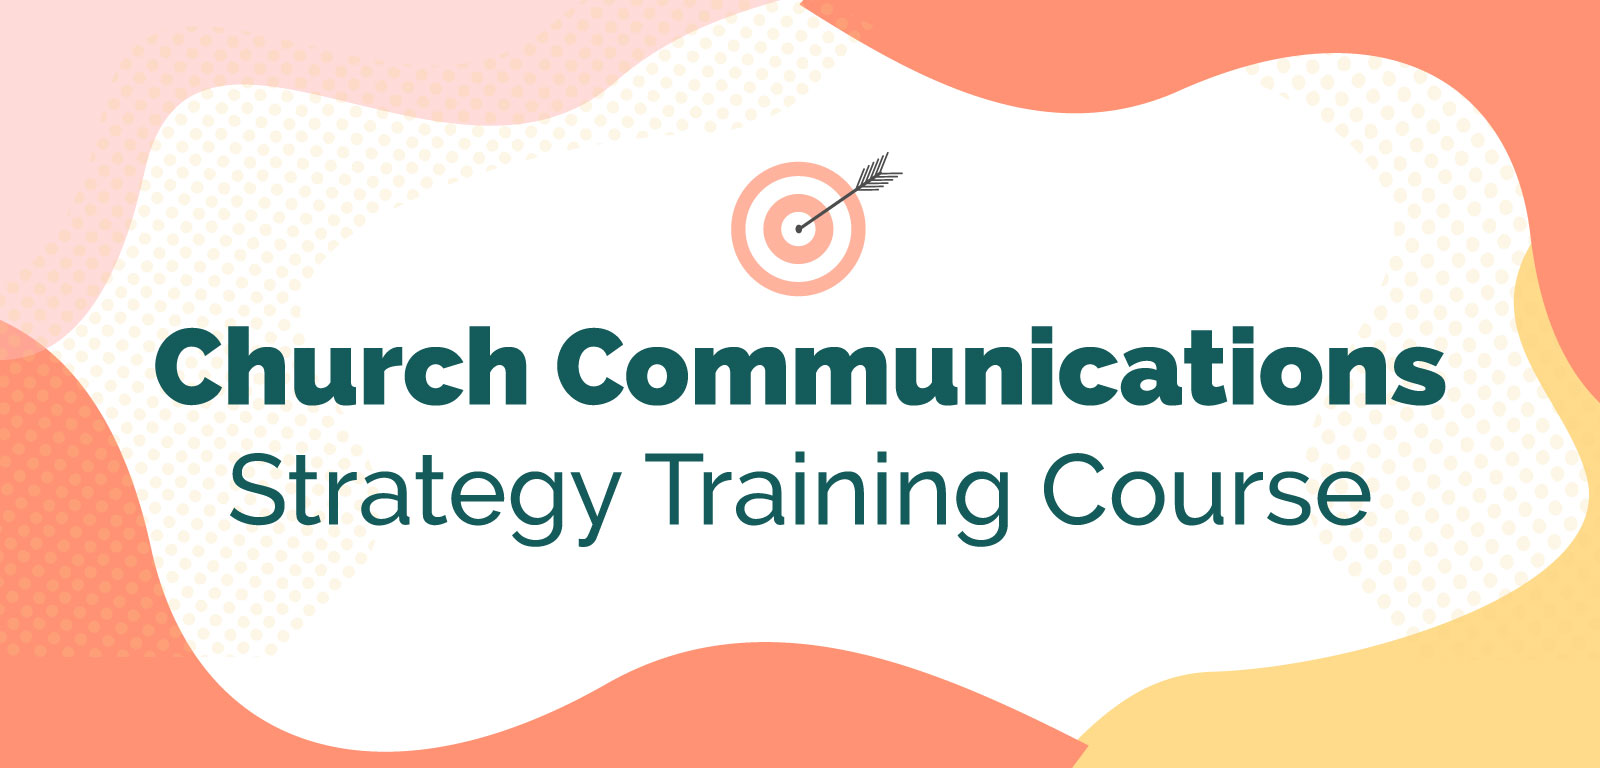 Church Communications Strategy Training Course